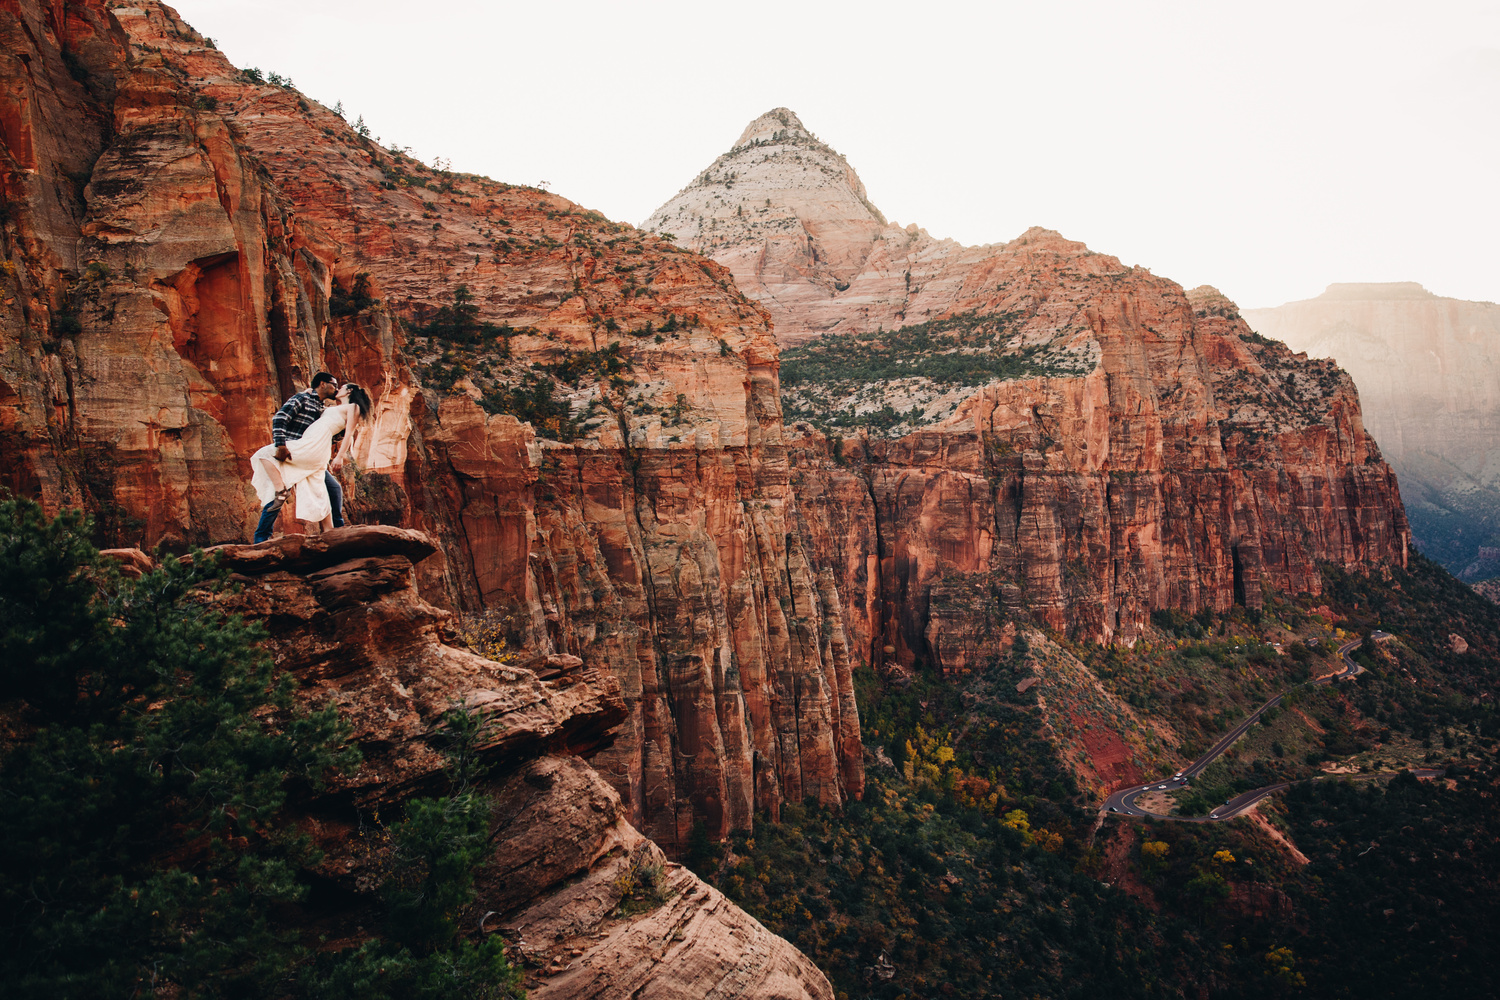 Zion Canyon Overlook by Luca Cometti